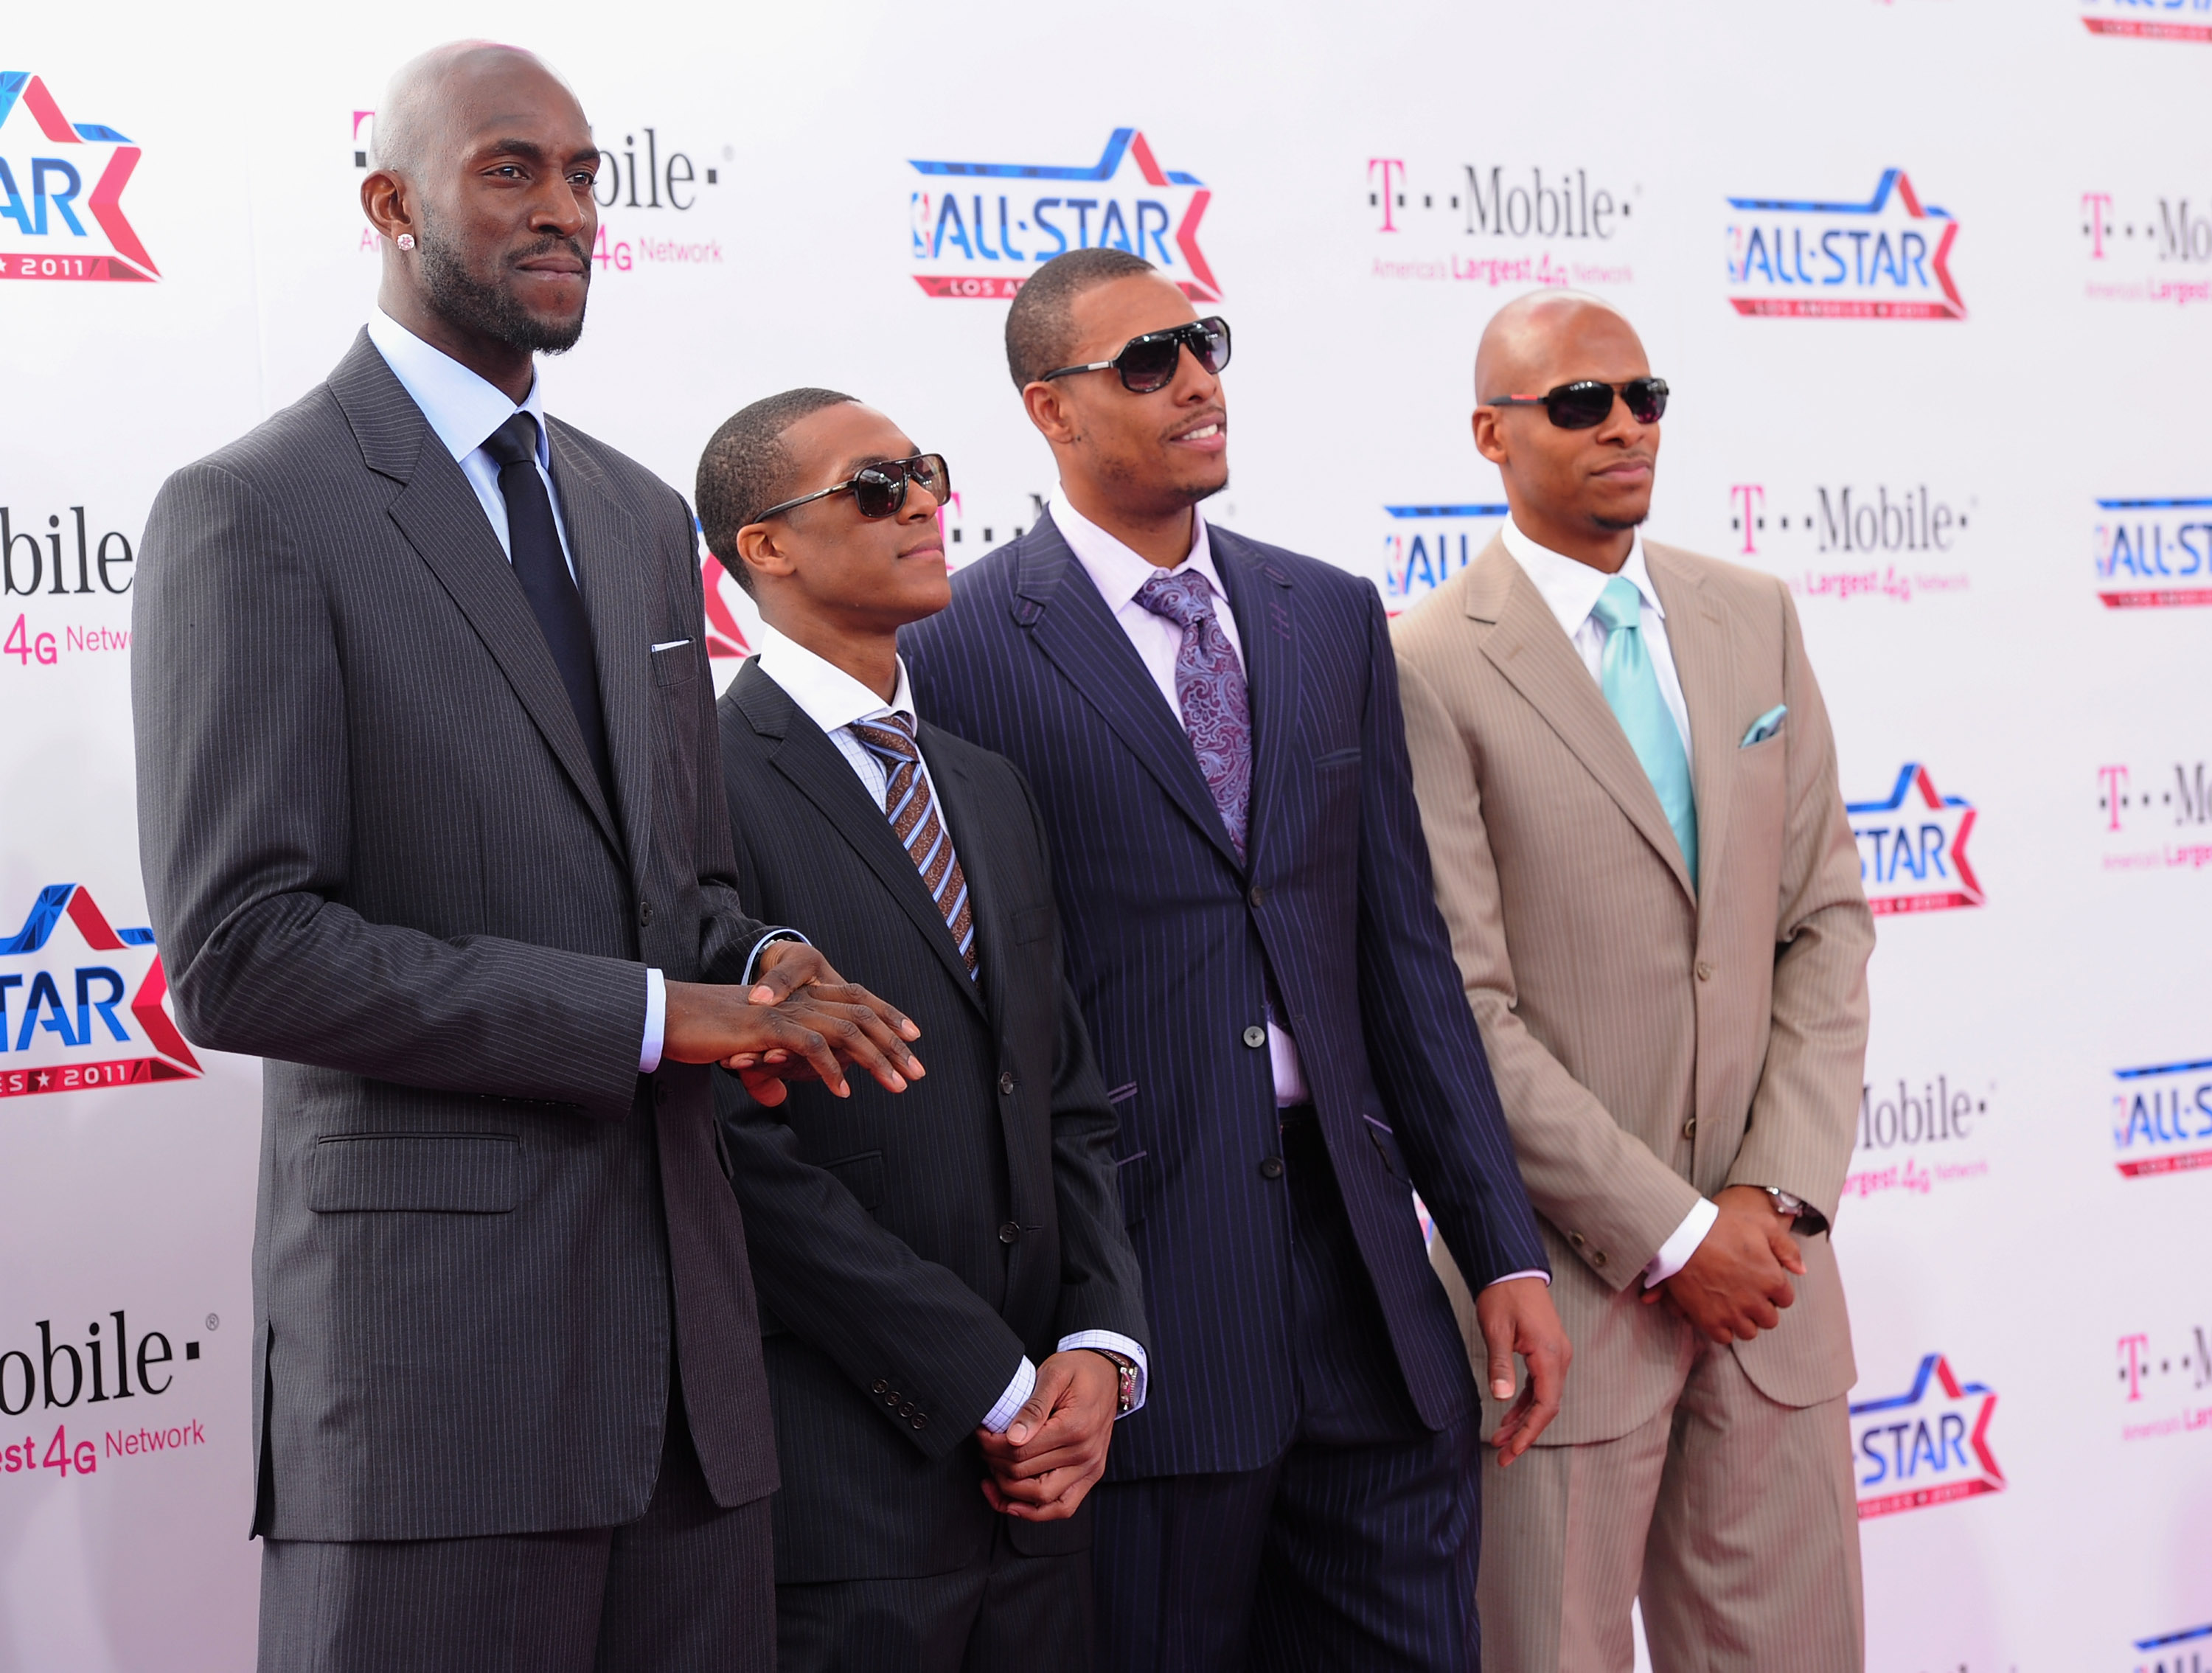 LOS ANGELES, CA - FEBRUARY 20:  NBA players Kevin Garnett, Rajon Rondo, Paul Pierce and Ray Allen arrive to the T-Mobile Magenta Carpet at the 2011 NBA All-Star Game on February 20, 2011 in Los Angeles, California.  (Photo by Alberto E. Rodriguez/Getty Im